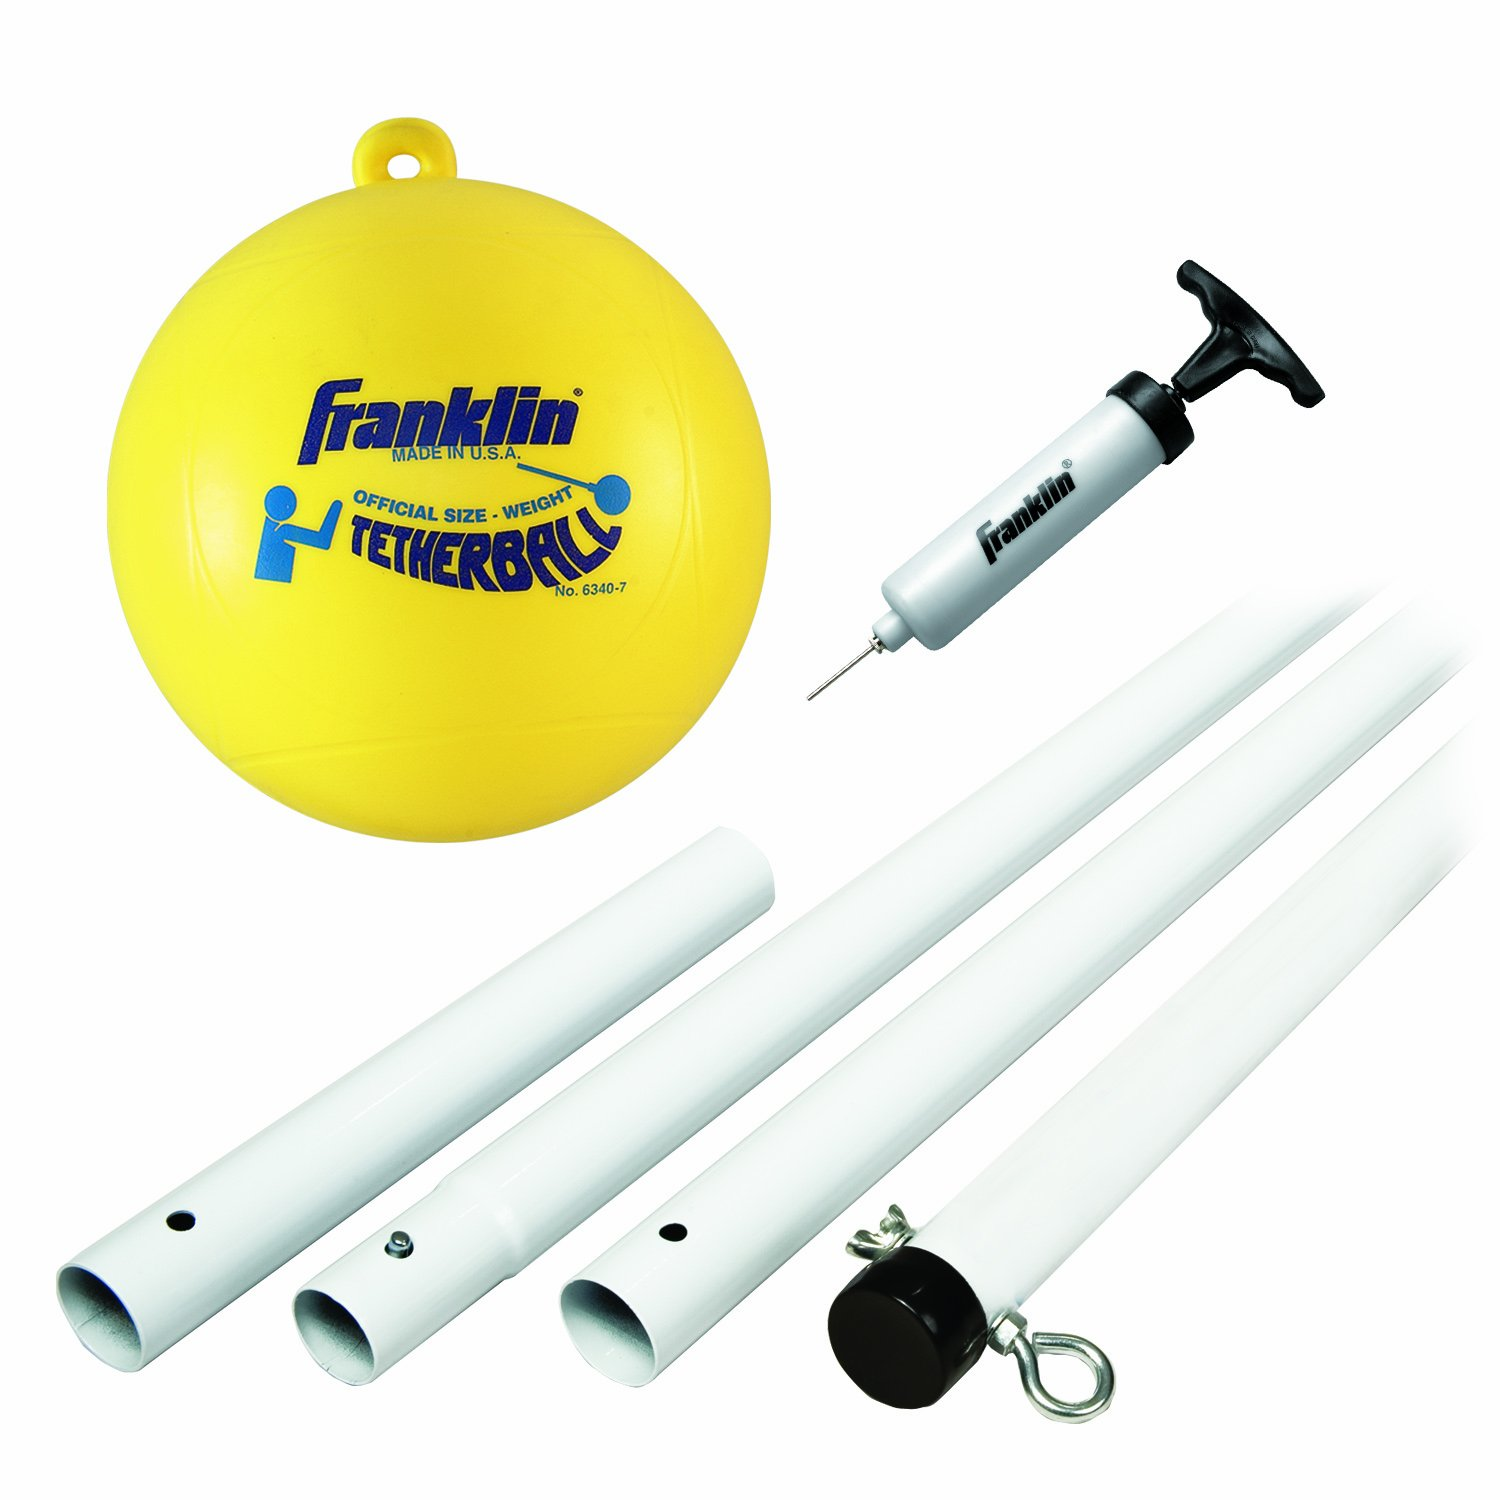 Franklin Sports Recreational Tetherball Inc. 13048